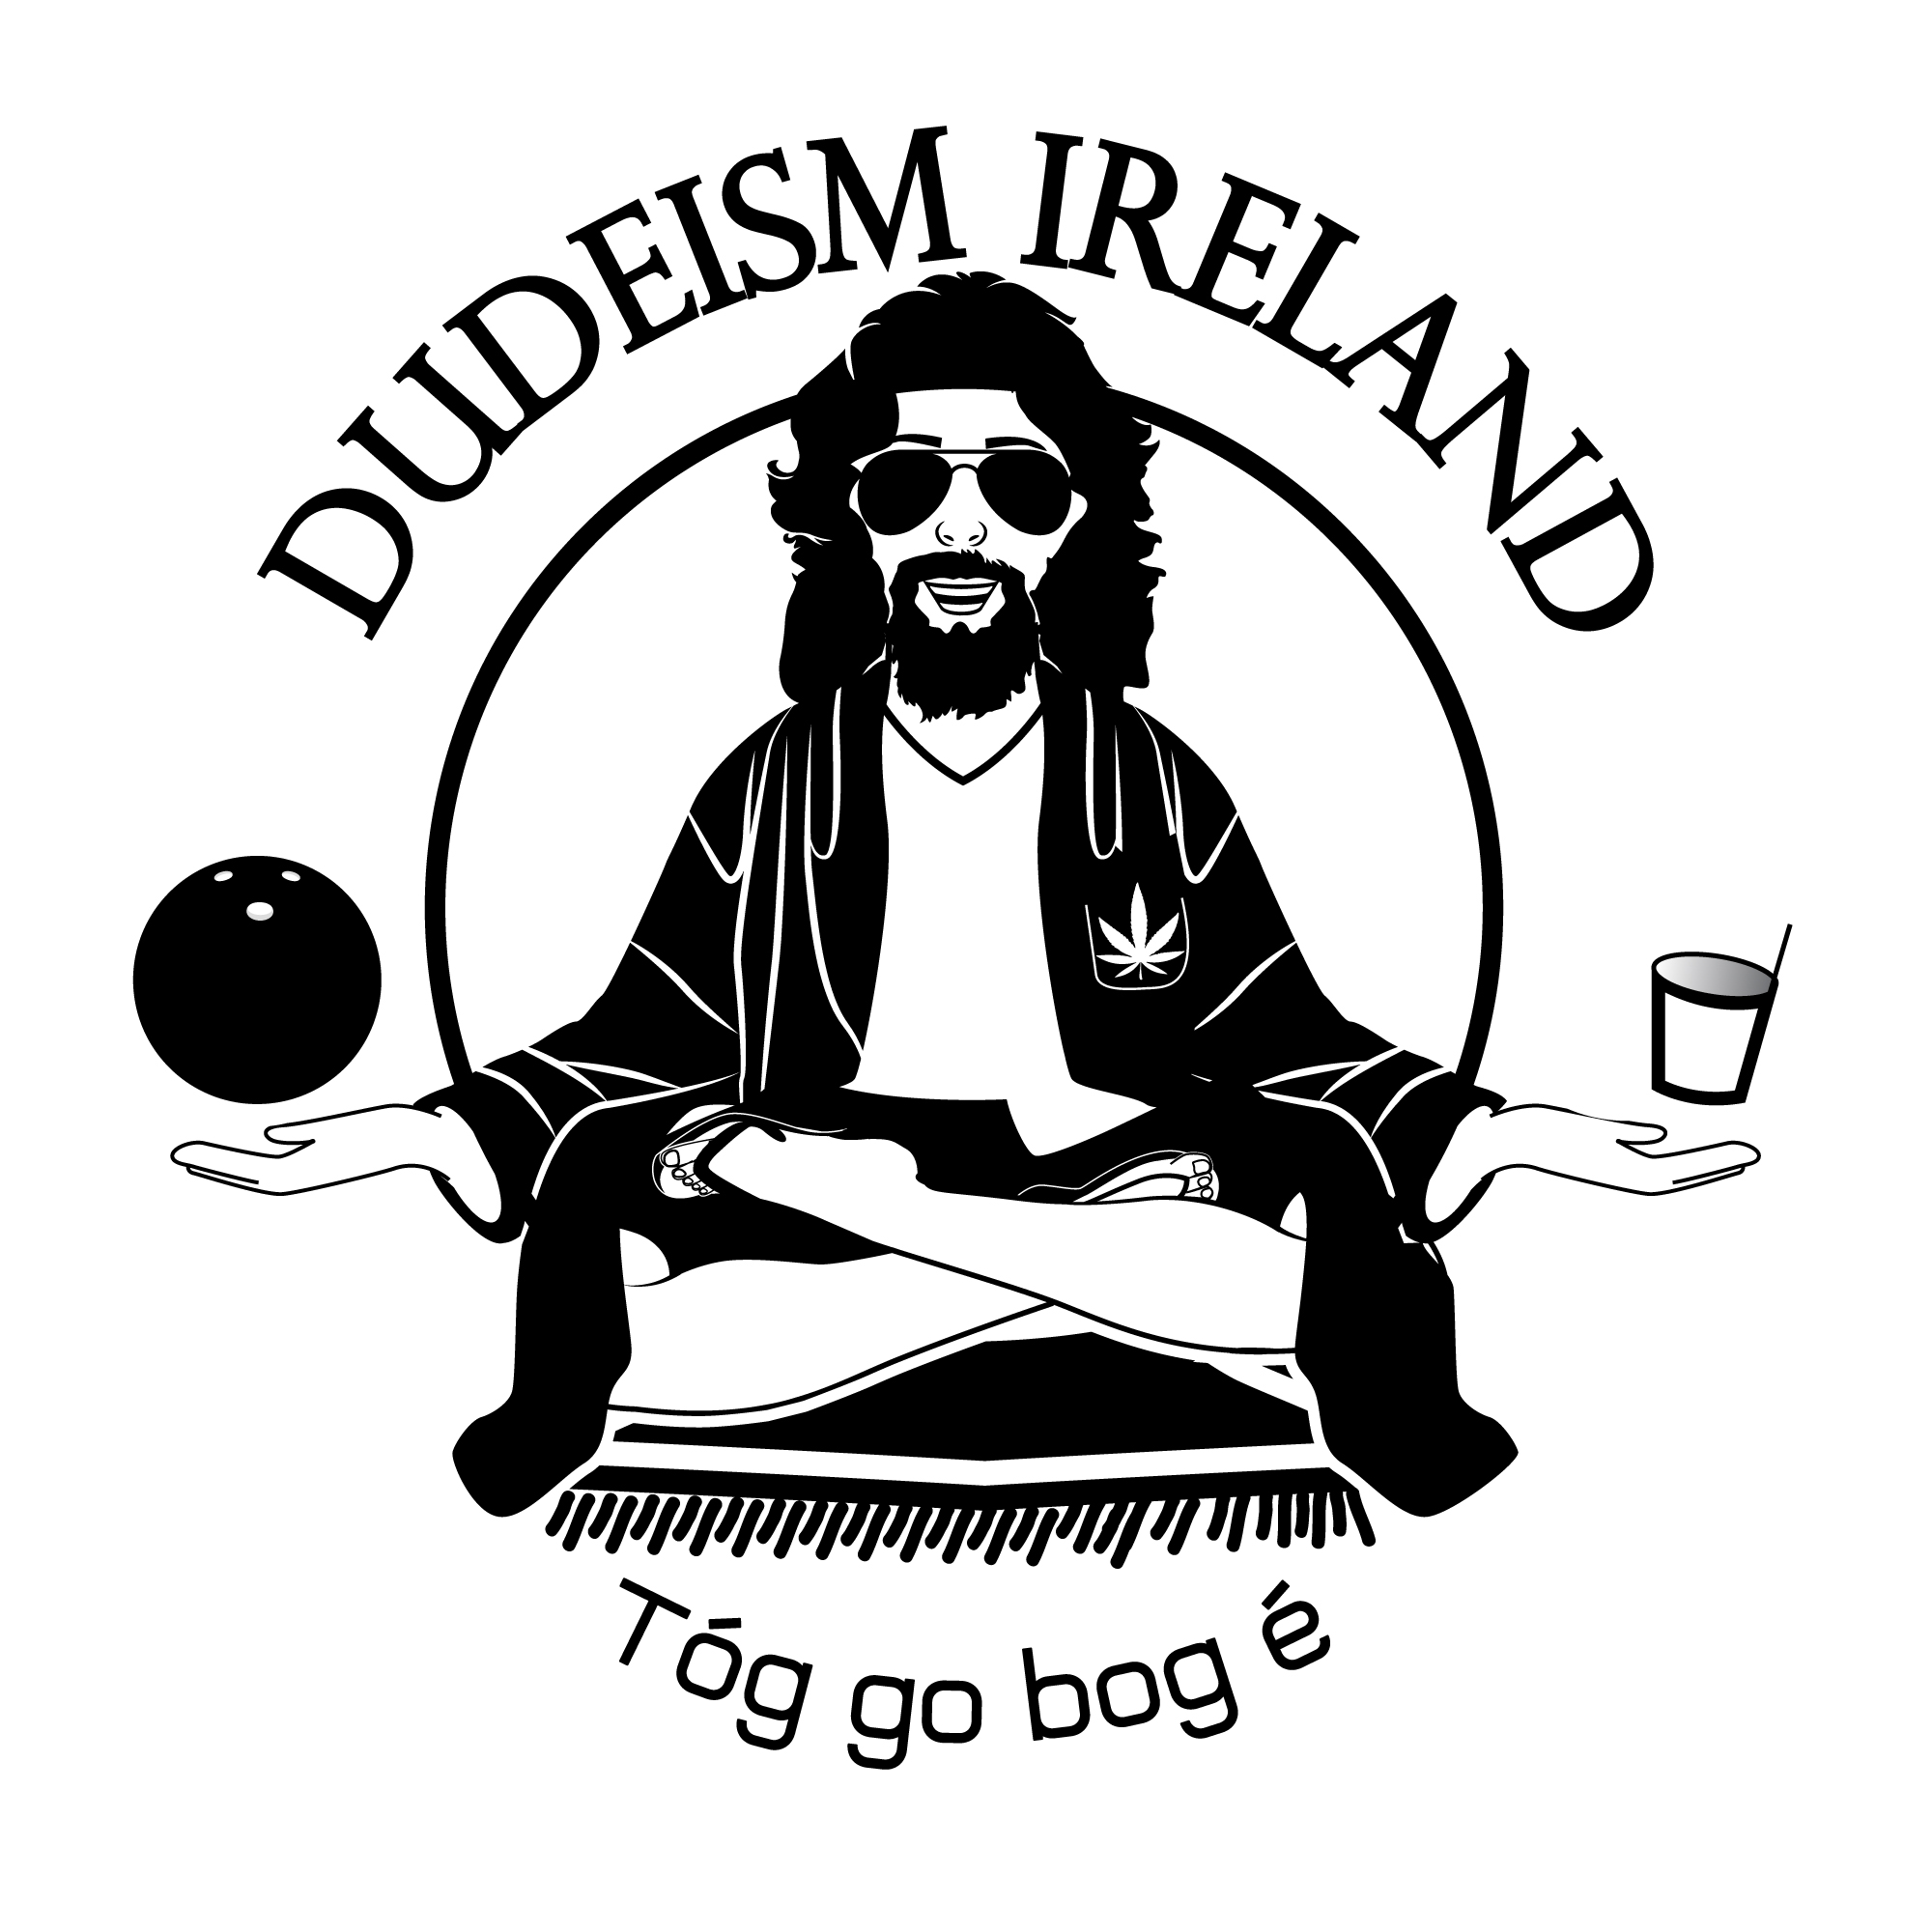 Become a dudeist priest